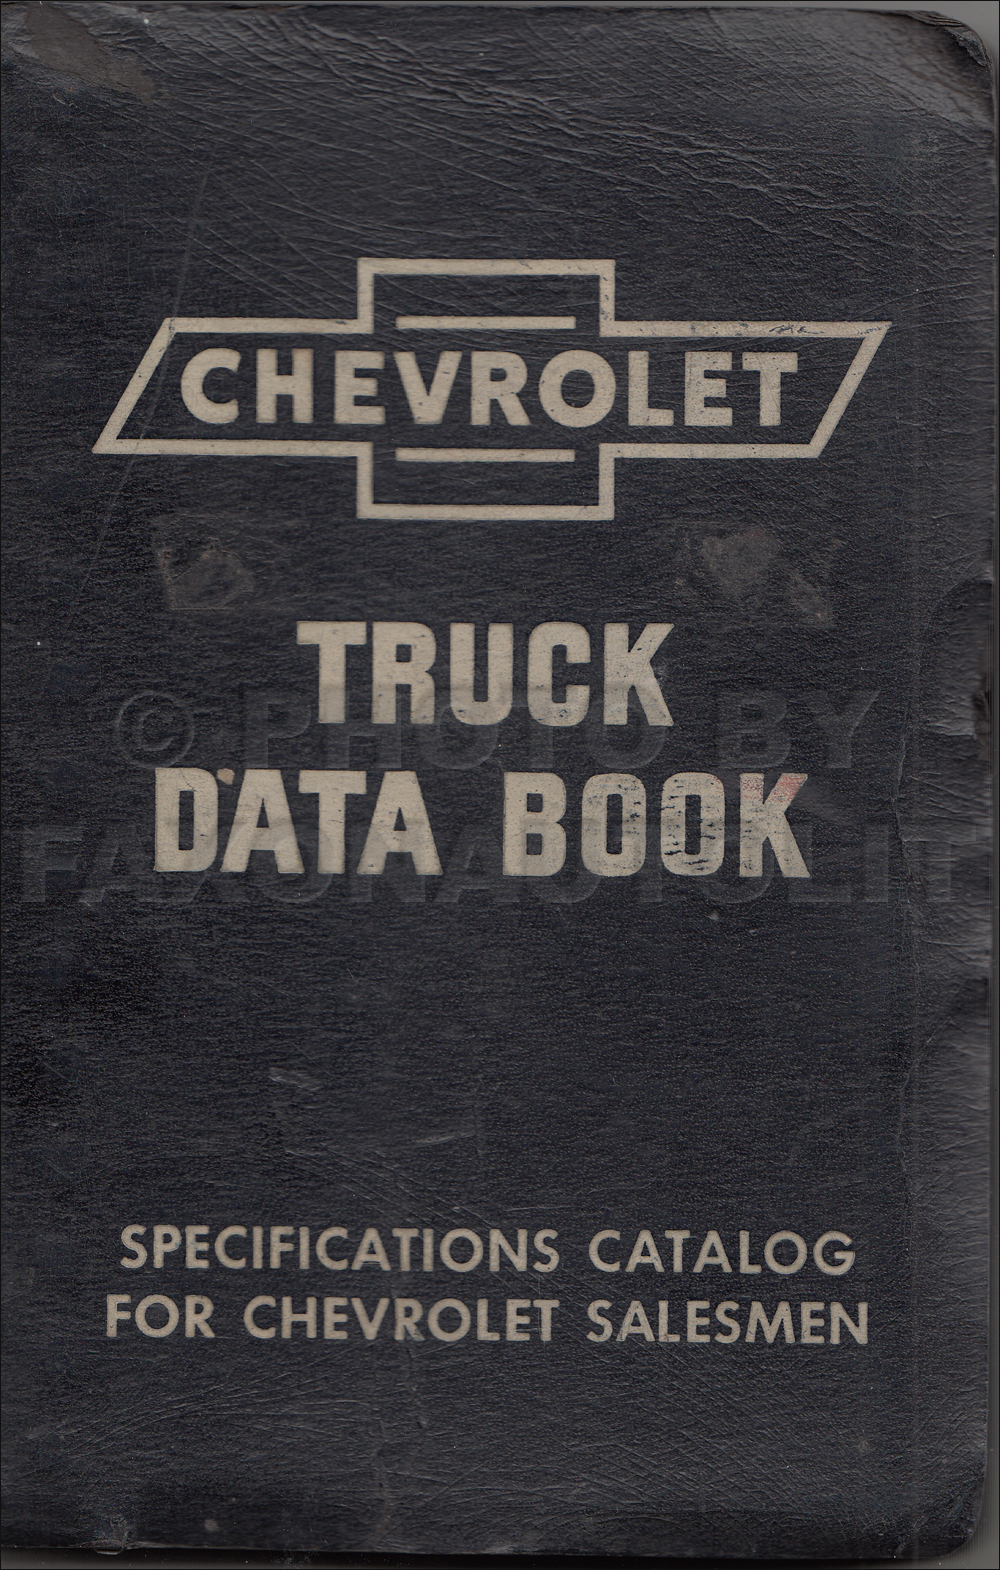 1954-1955 First Series Chevrolet Truck Data Book Original $239.00